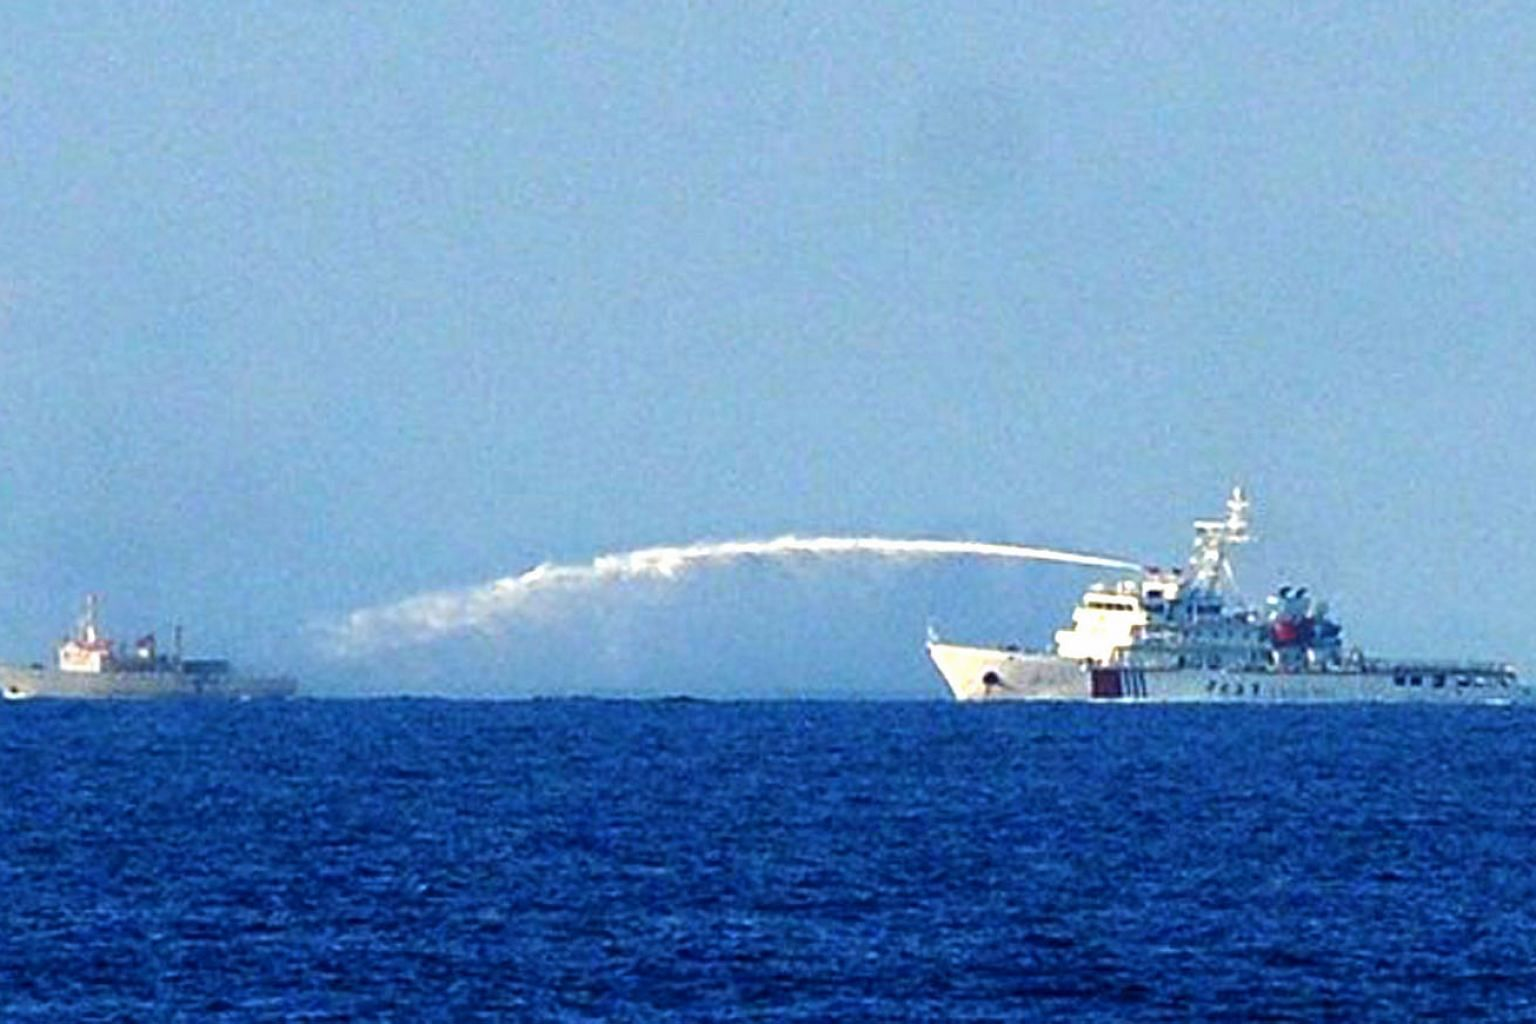 A Chinese coast guard ship (right) using a water cannon on June 2, 2014, on a Vietnamese fisheries surveillance boat near a Chinese oil rig off Vietnam's central coast. As Asean chairman, Vietnam will bear in mind the need to build Asean consensus on